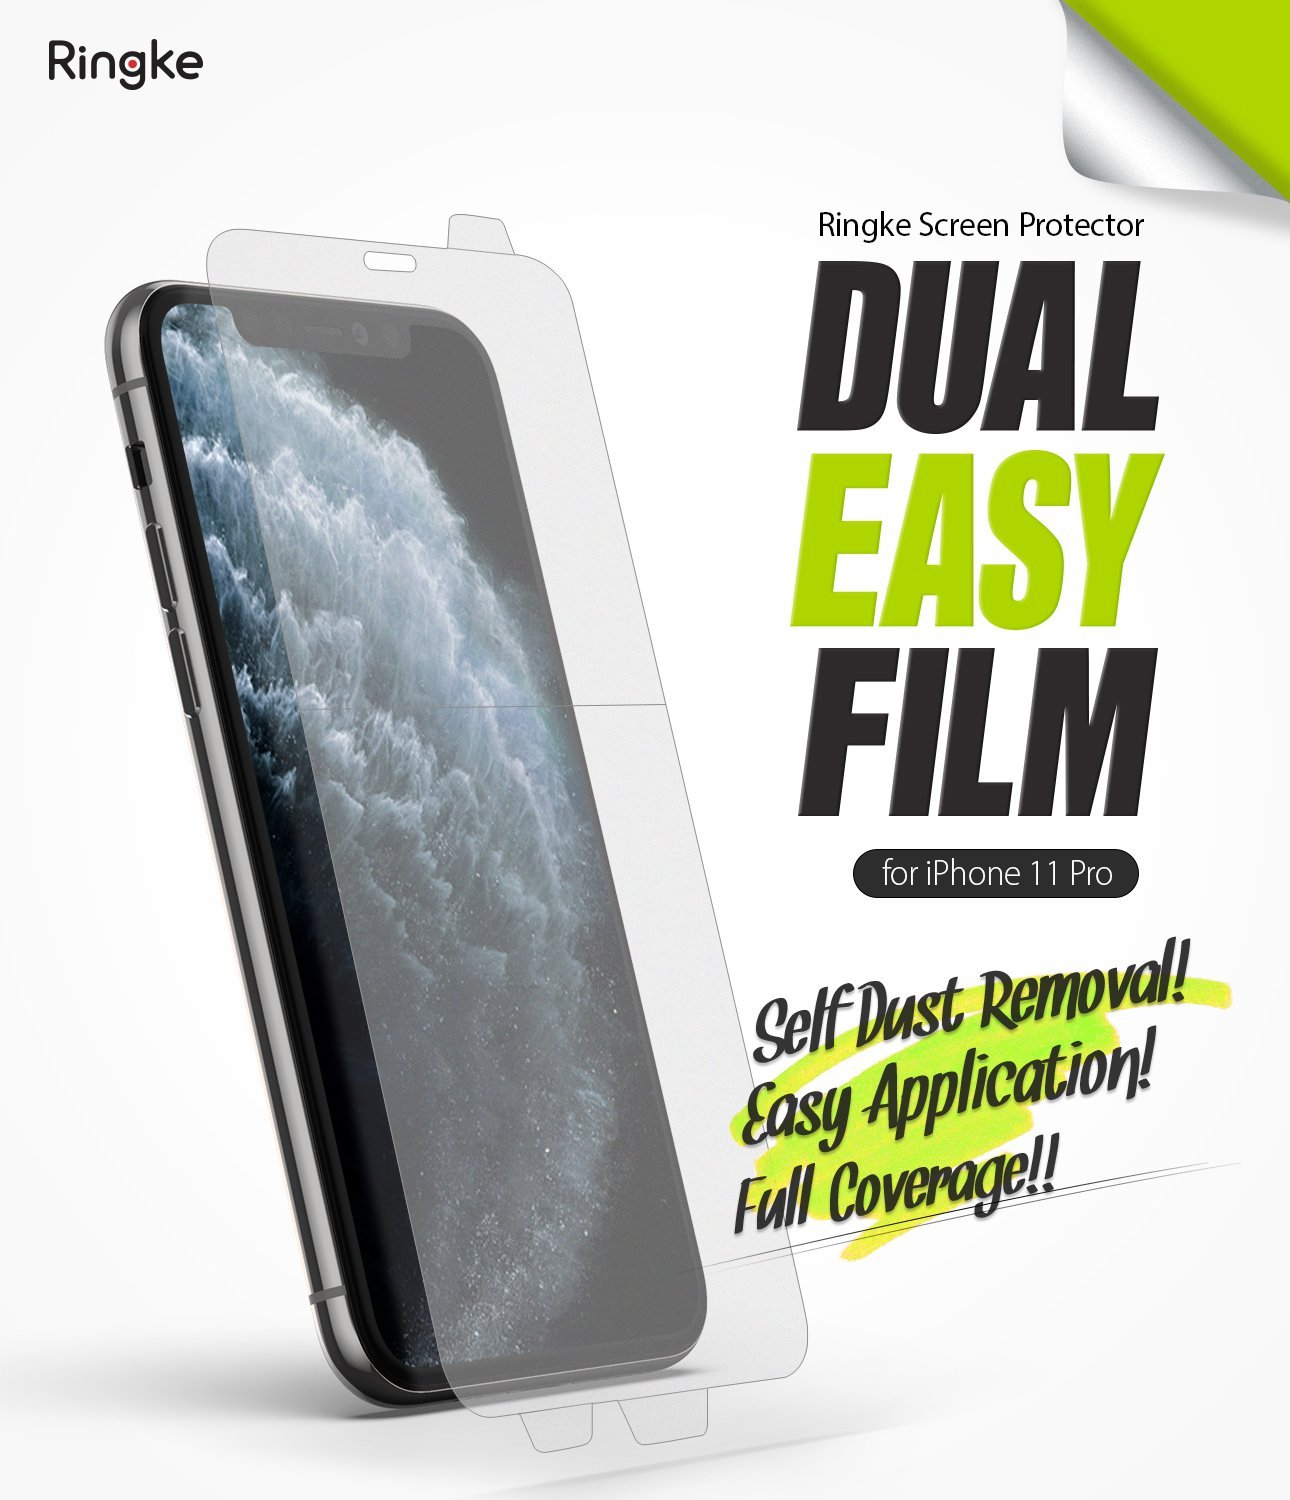 iPhone 11 Pro Screen Protector Dual Easy Film 2 Pack